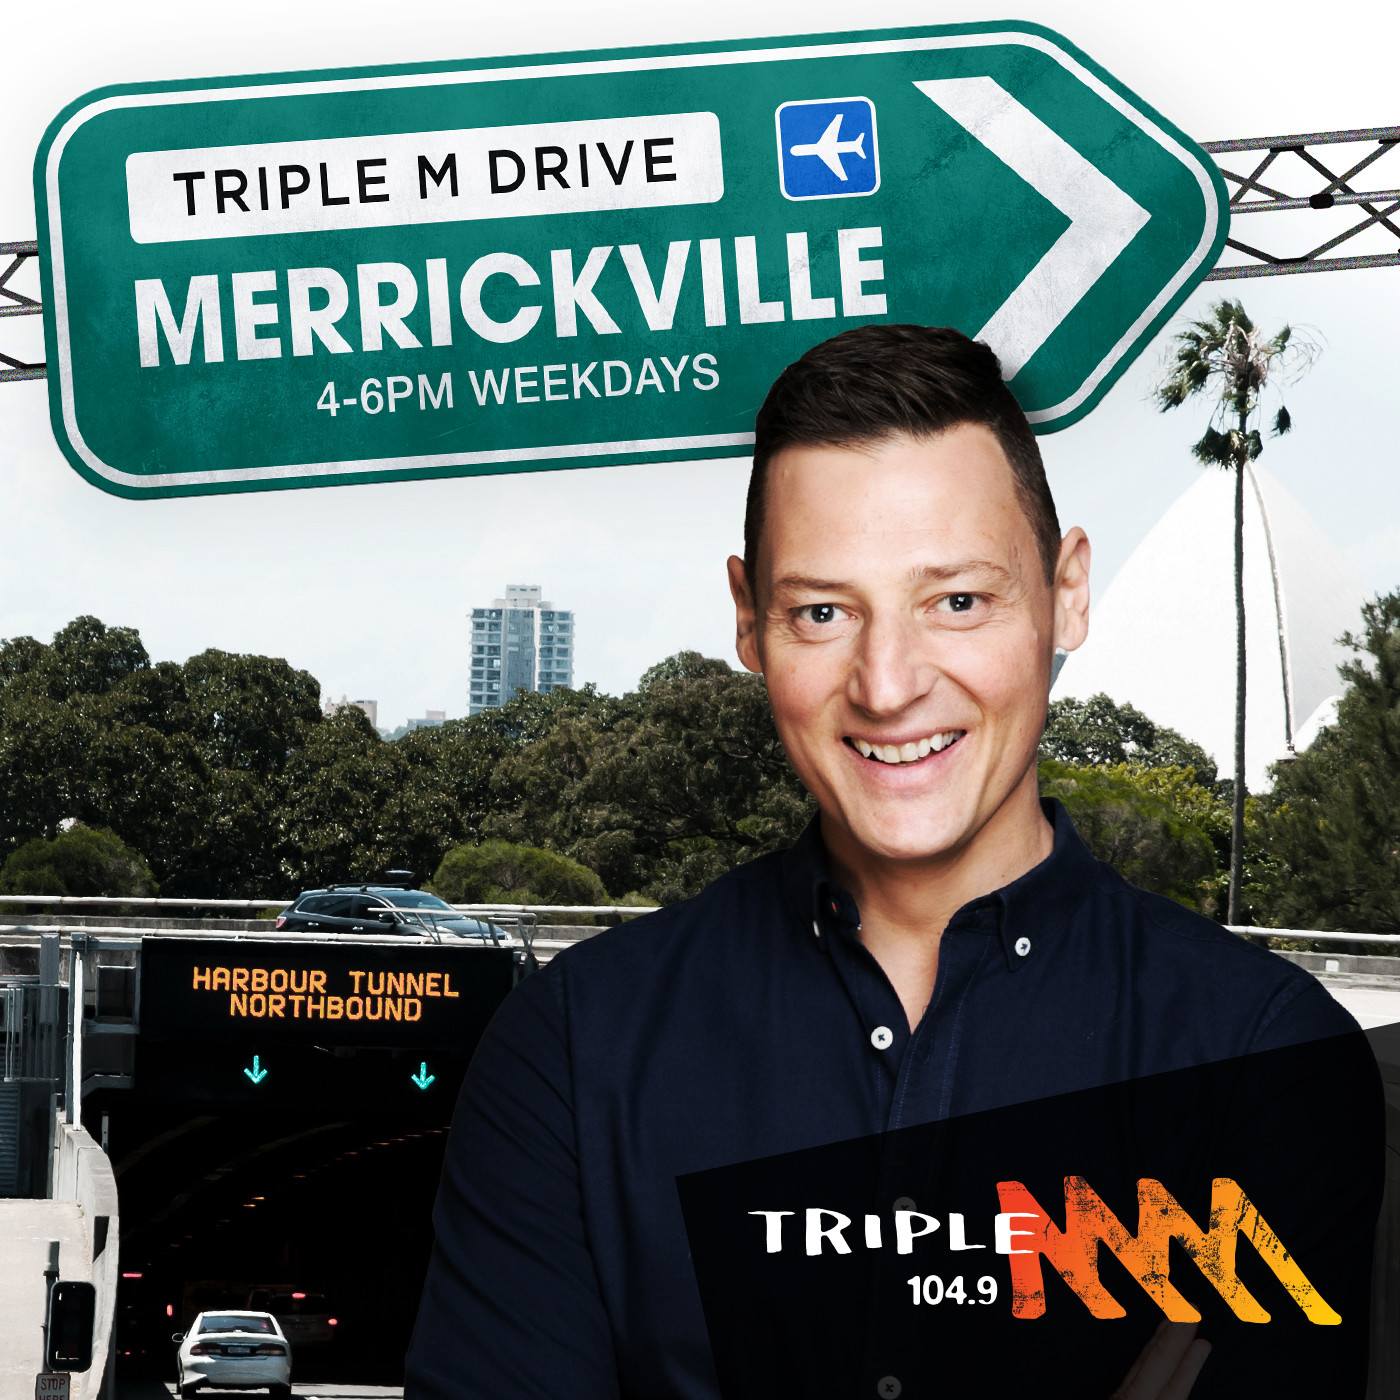 The Merrickville Catch Up - Triple M - Merrick Watts